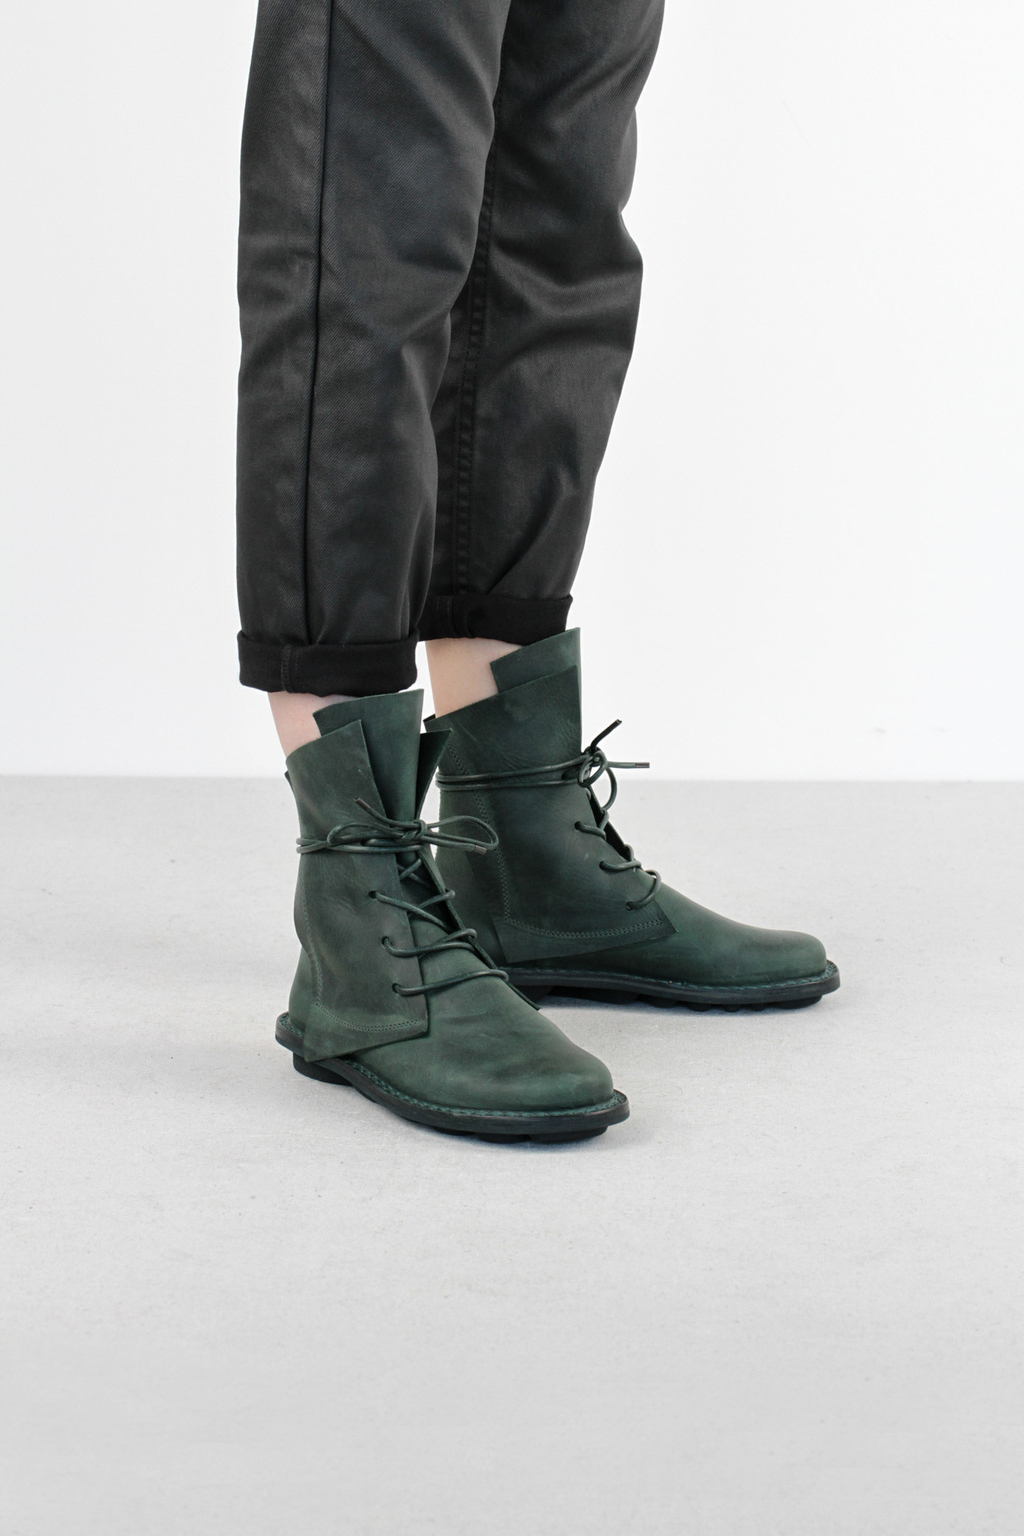 Trippen rectangle f petrol pul leather boots